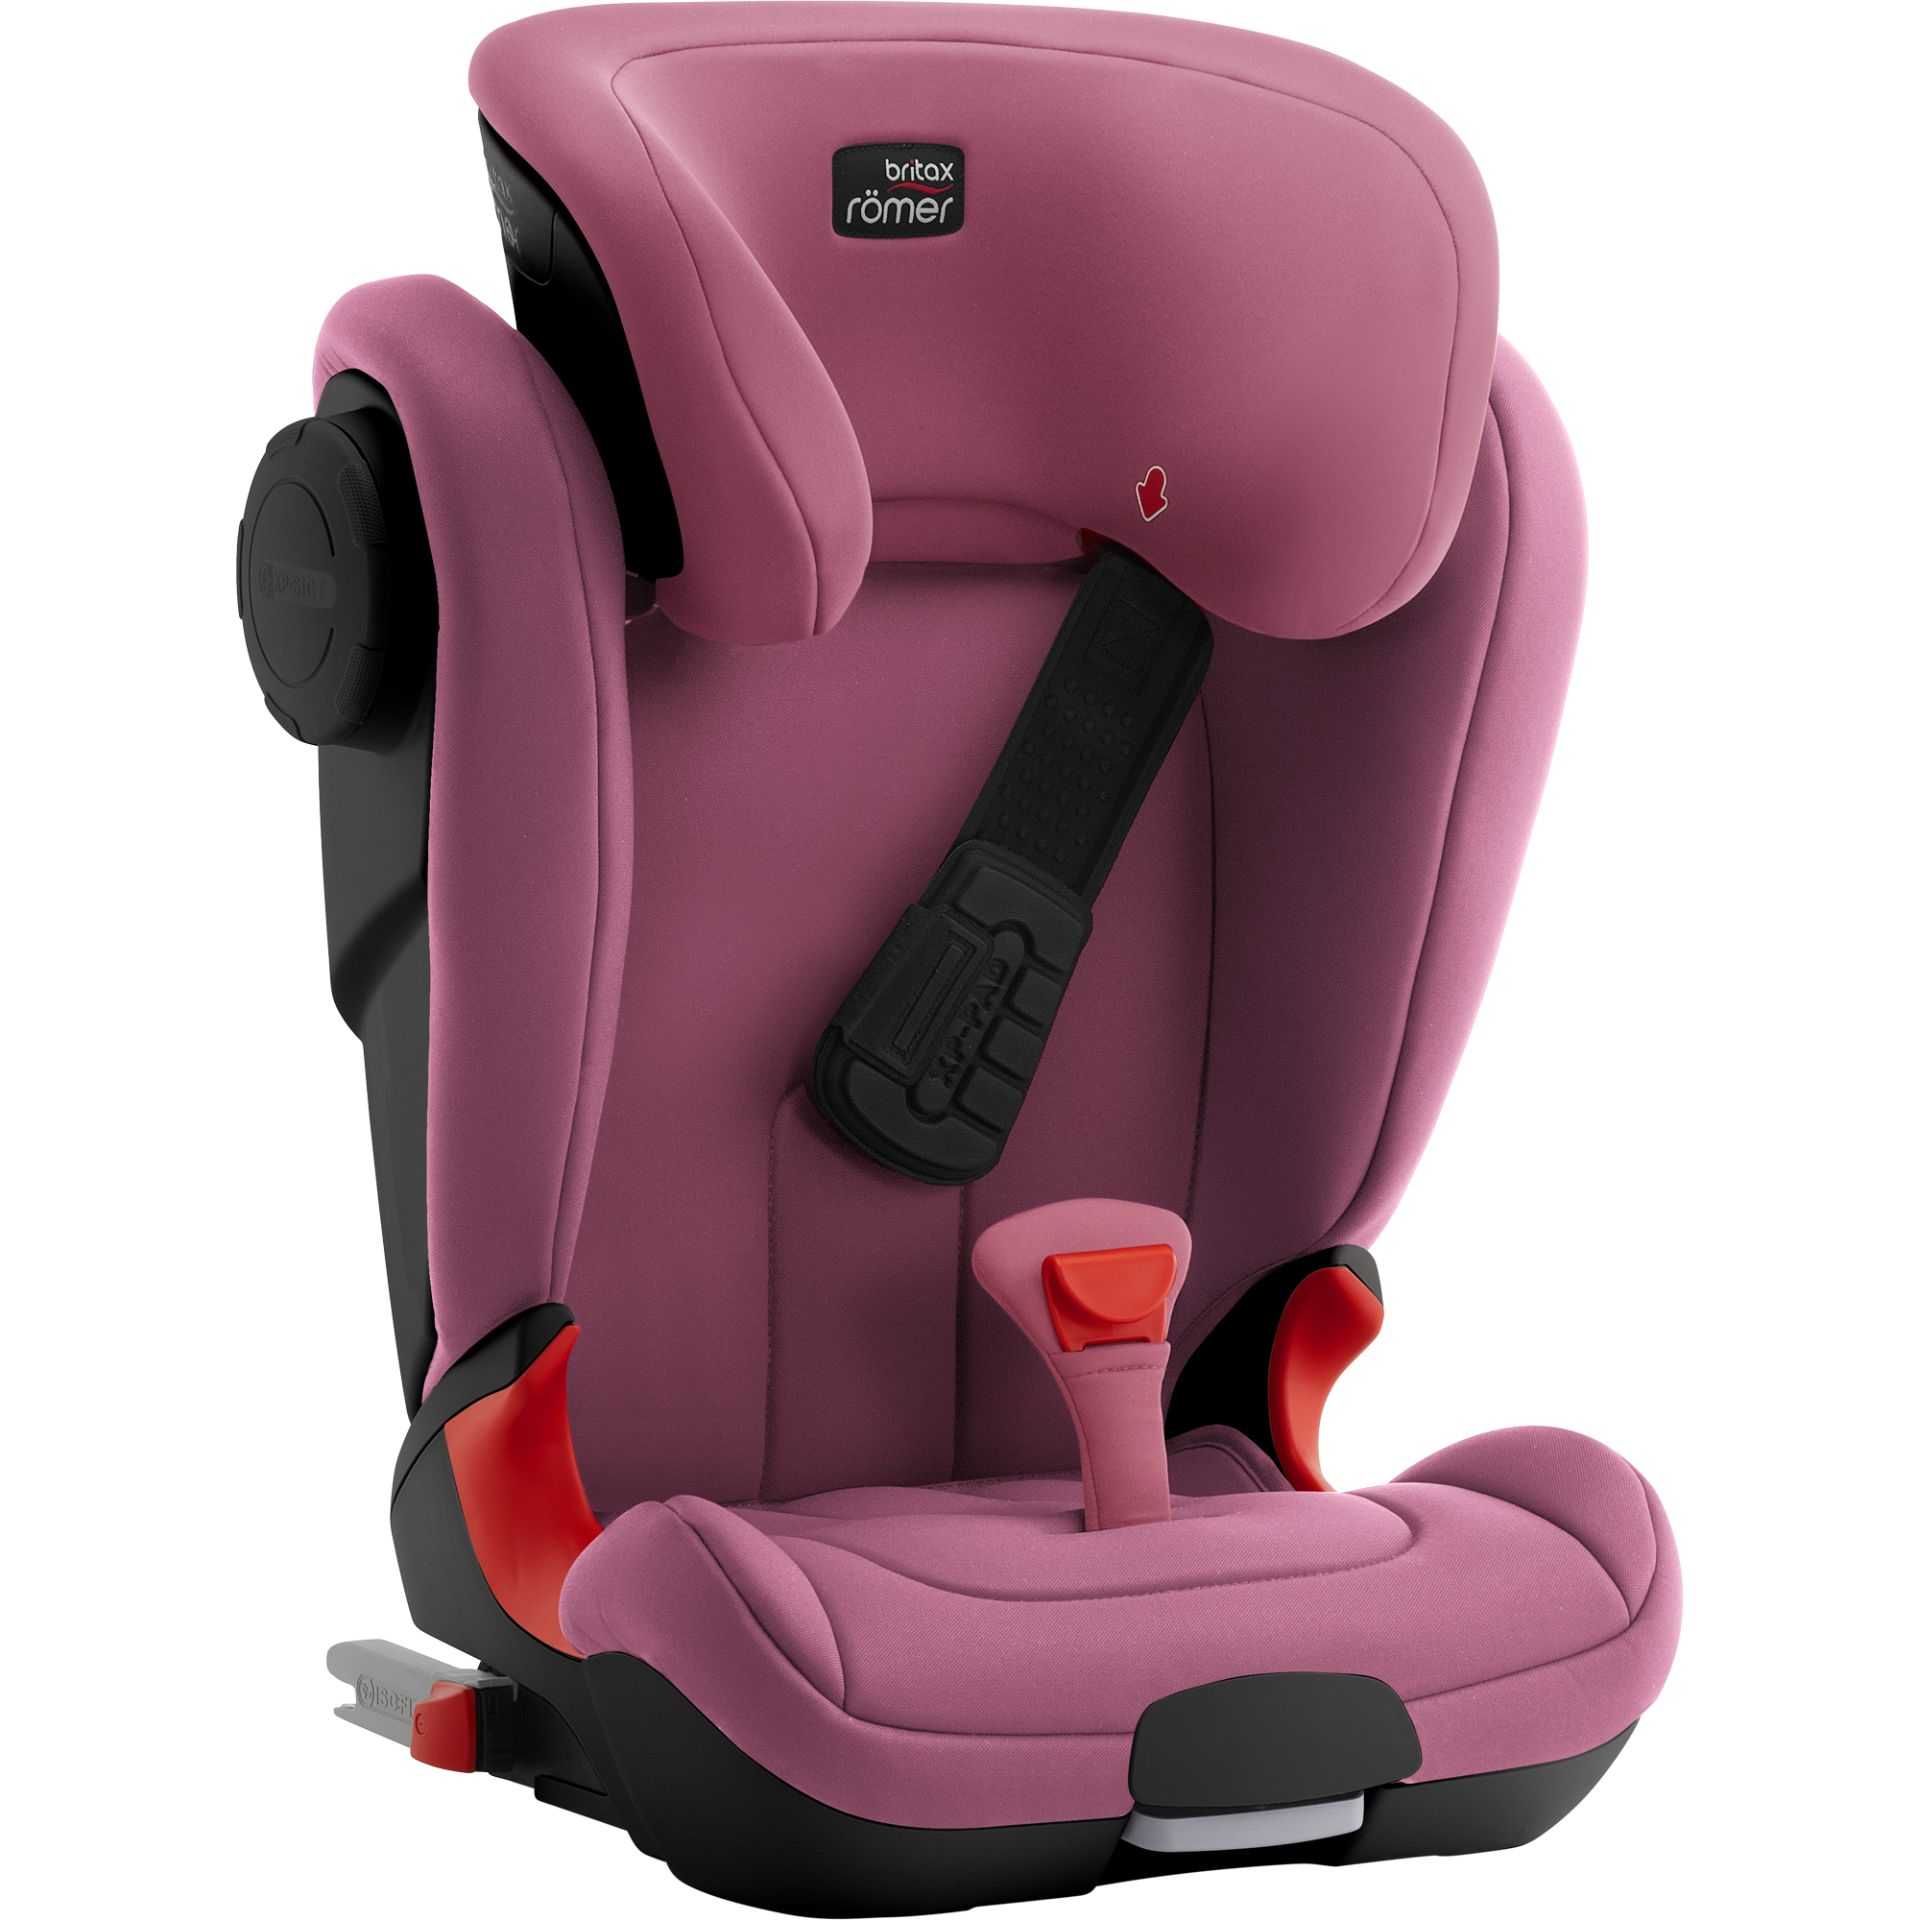 britax r mer child car seat kidfix ii xp sict black series 2018 wine rose buy at kidsroom. Black Bedroom Furniture Sets. Home Design Ideas